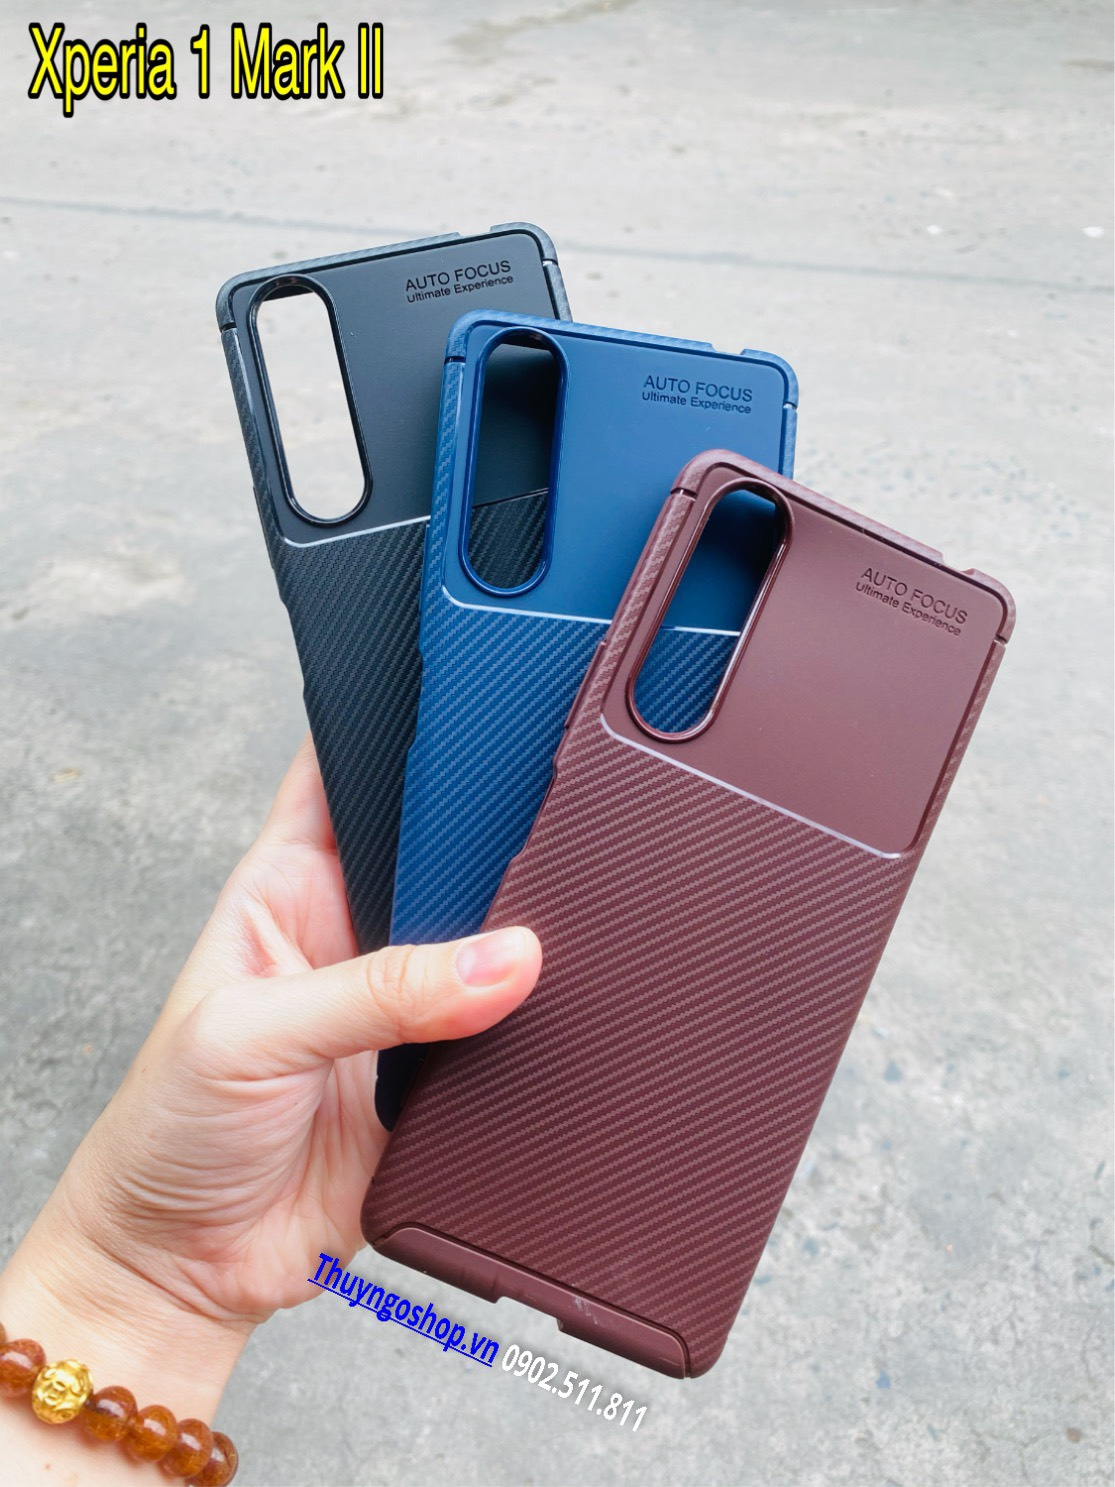 Ốp dẻo carbon chống sốc Sony Xperia 1 Mark II